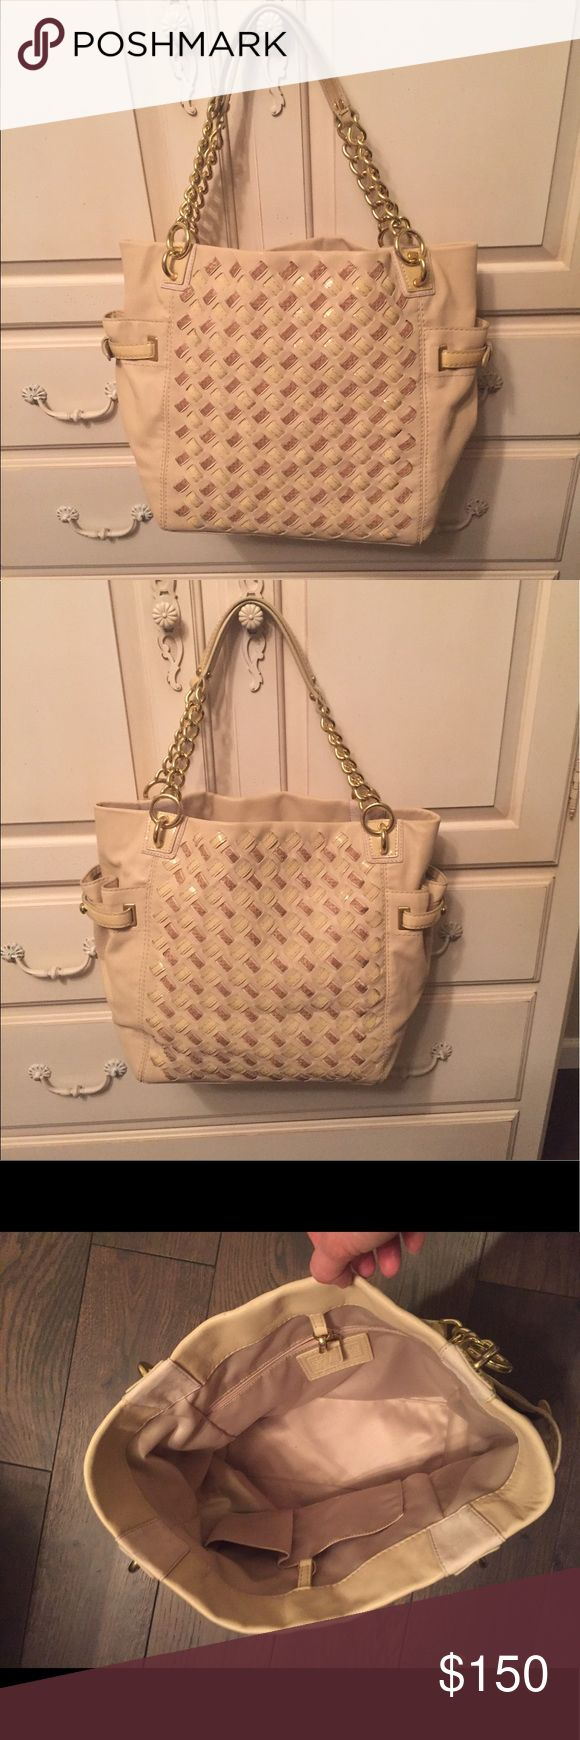 Gorgeous Coach leather tote Nude leather barely used tote with beautiful weaved detail on both sides. Gold chain link straps with 7.5 inch drop. Dimensions: 11.5 inches x 15.25 inches x 5.5 inches. Two side exterior pockets, one interior zip pocket, two interior slip pockets. Coach Bags Totes